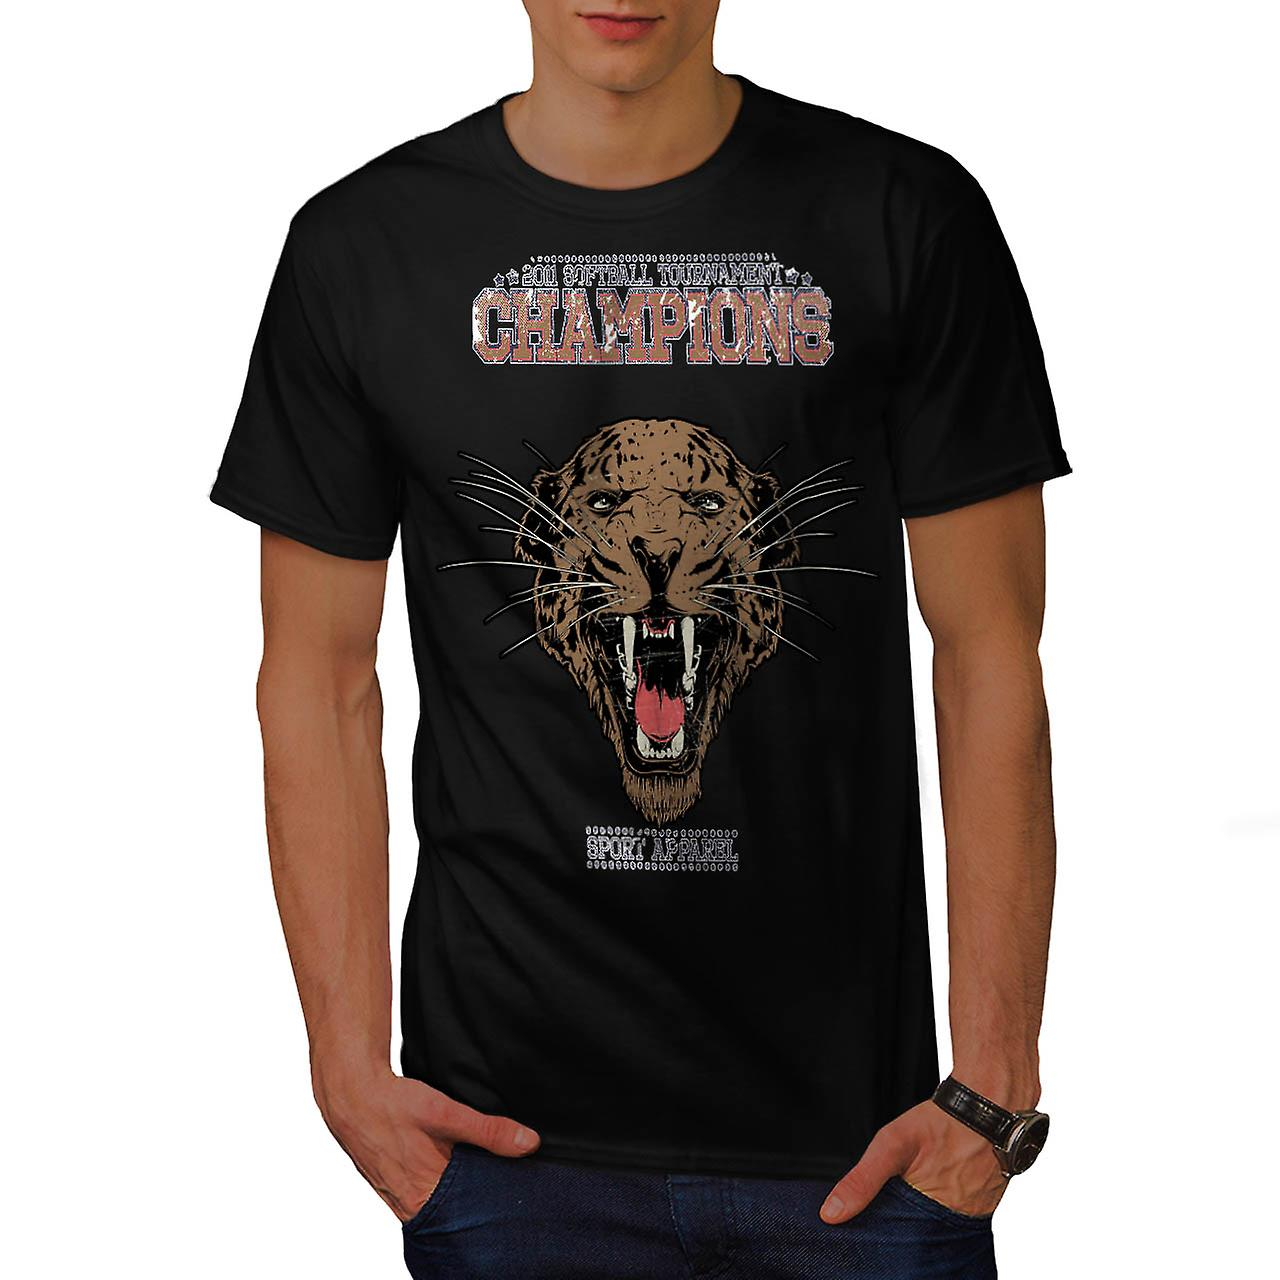 Cougar Sports Team Champions uomo t-shirt nera | Wellcoda